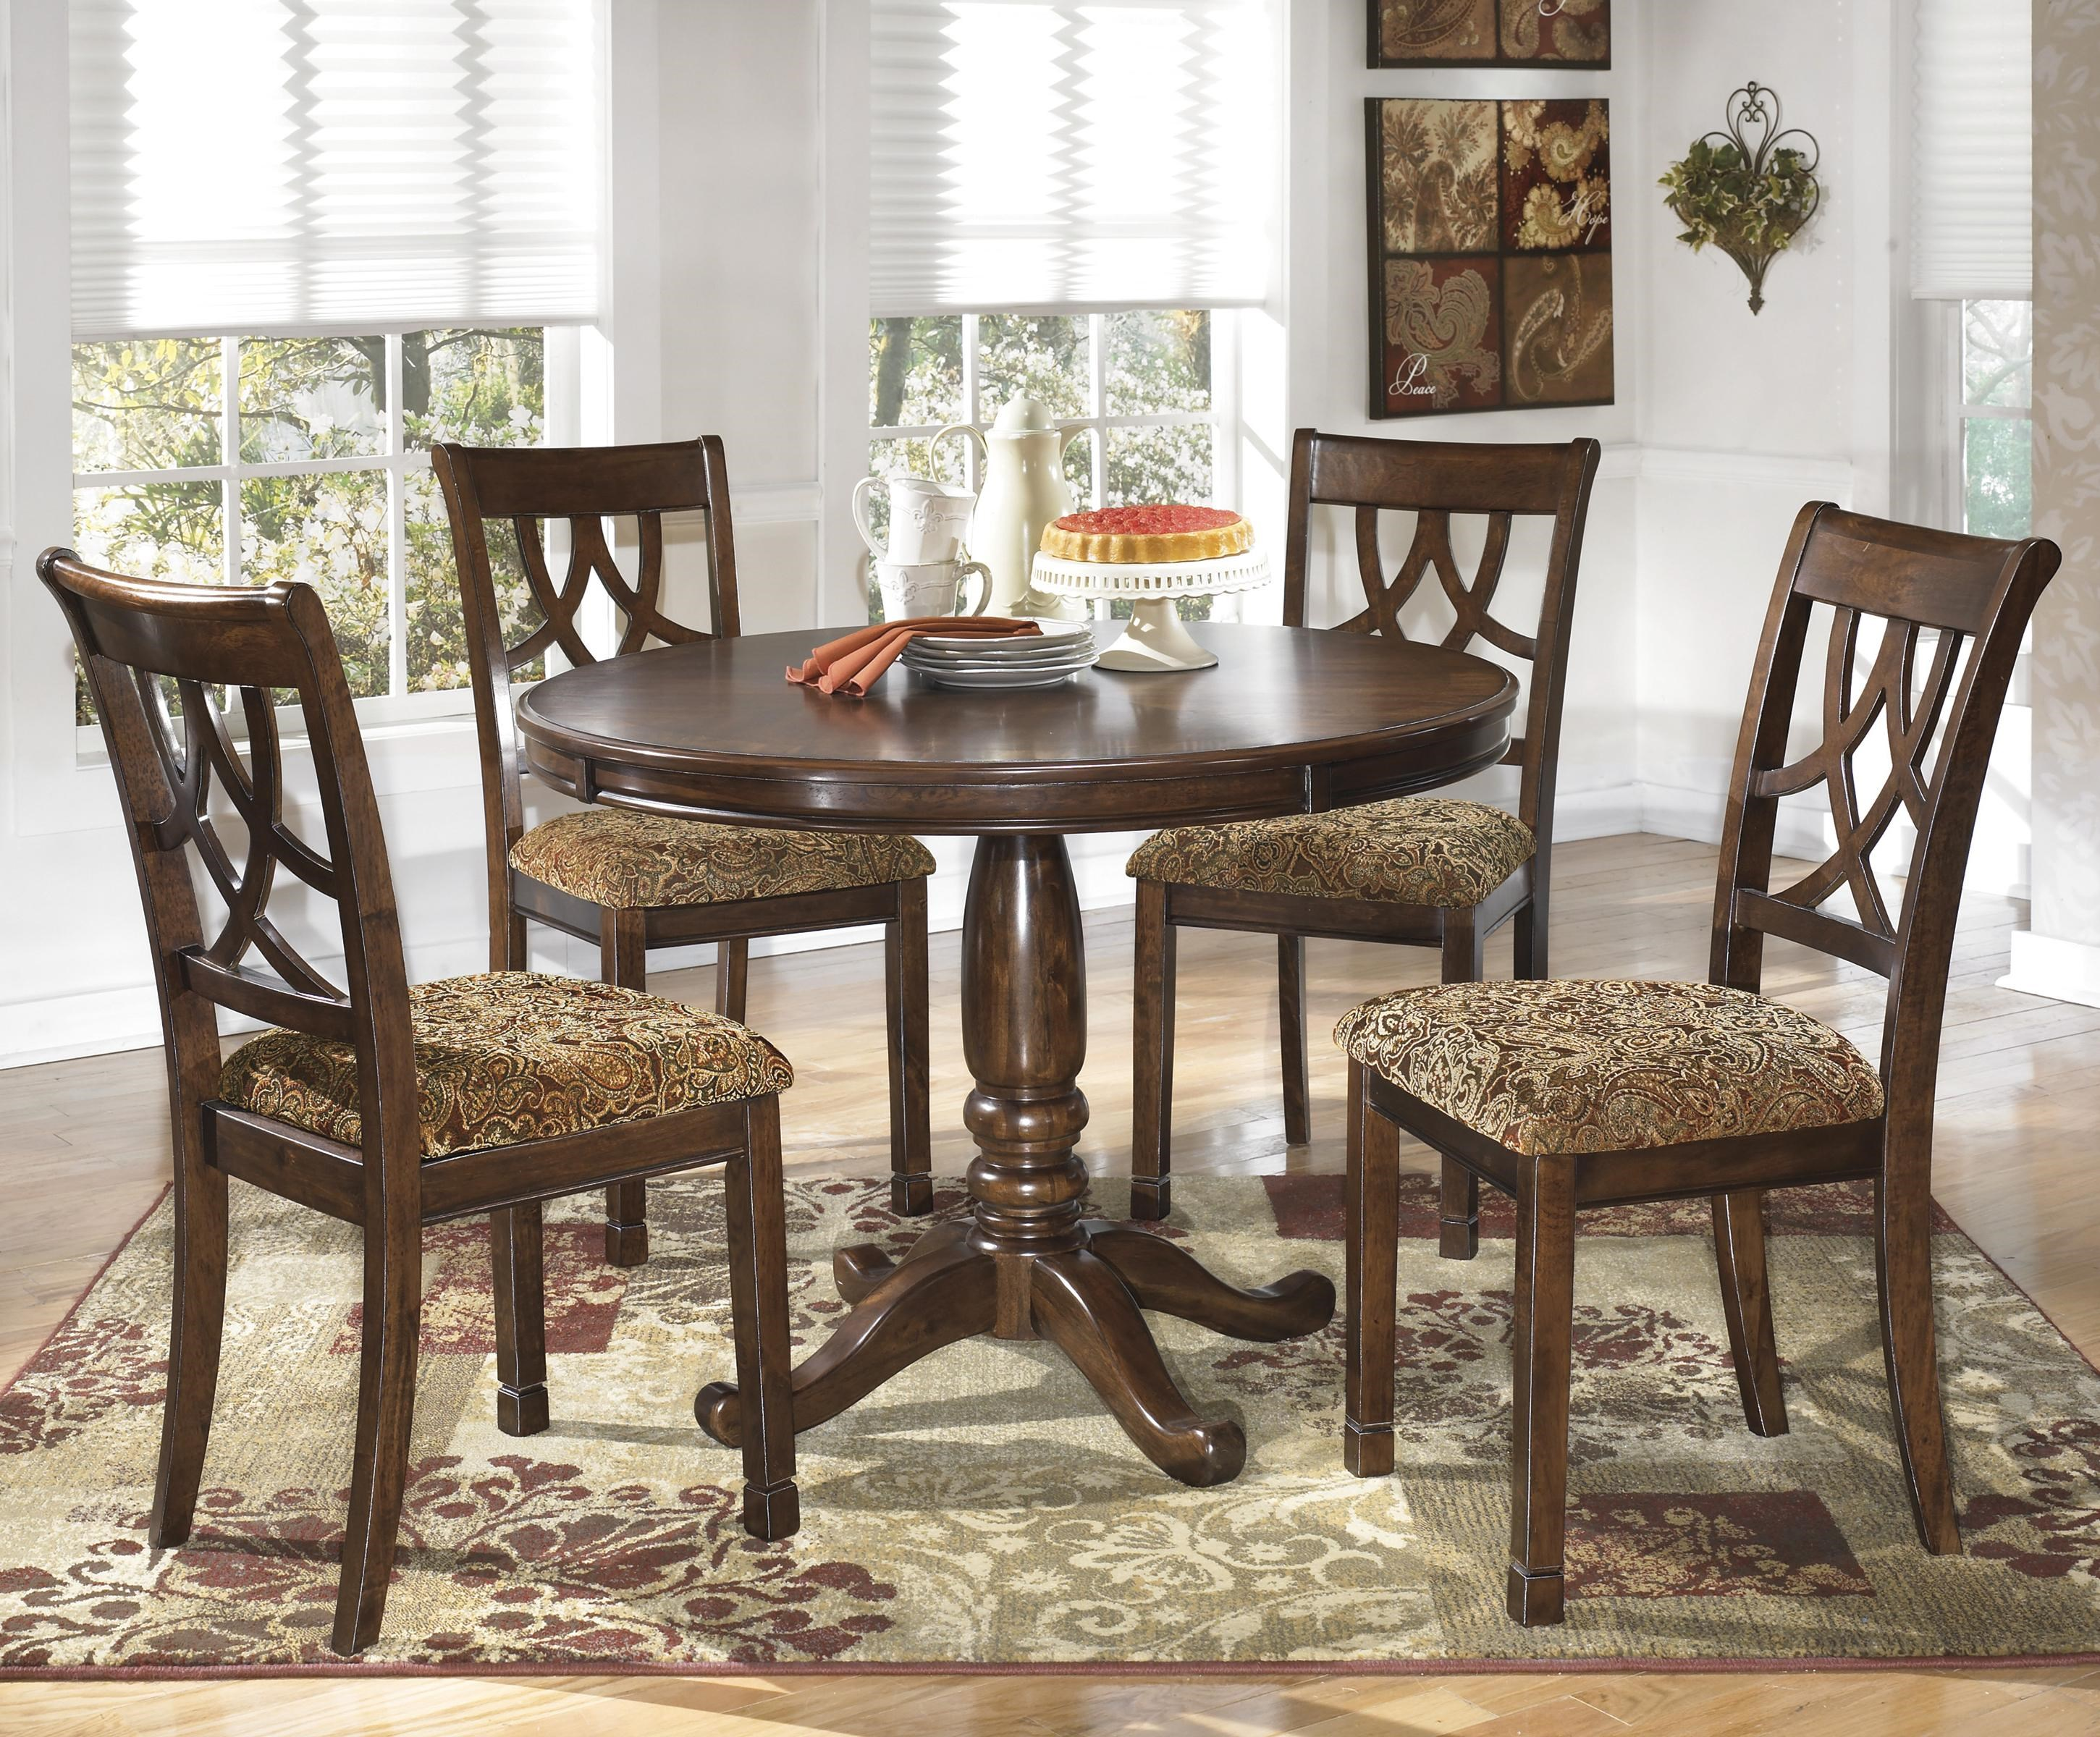 round dining room set. Ashley Signature Design Leahlyn5-Piece Round Dining Table Set Room